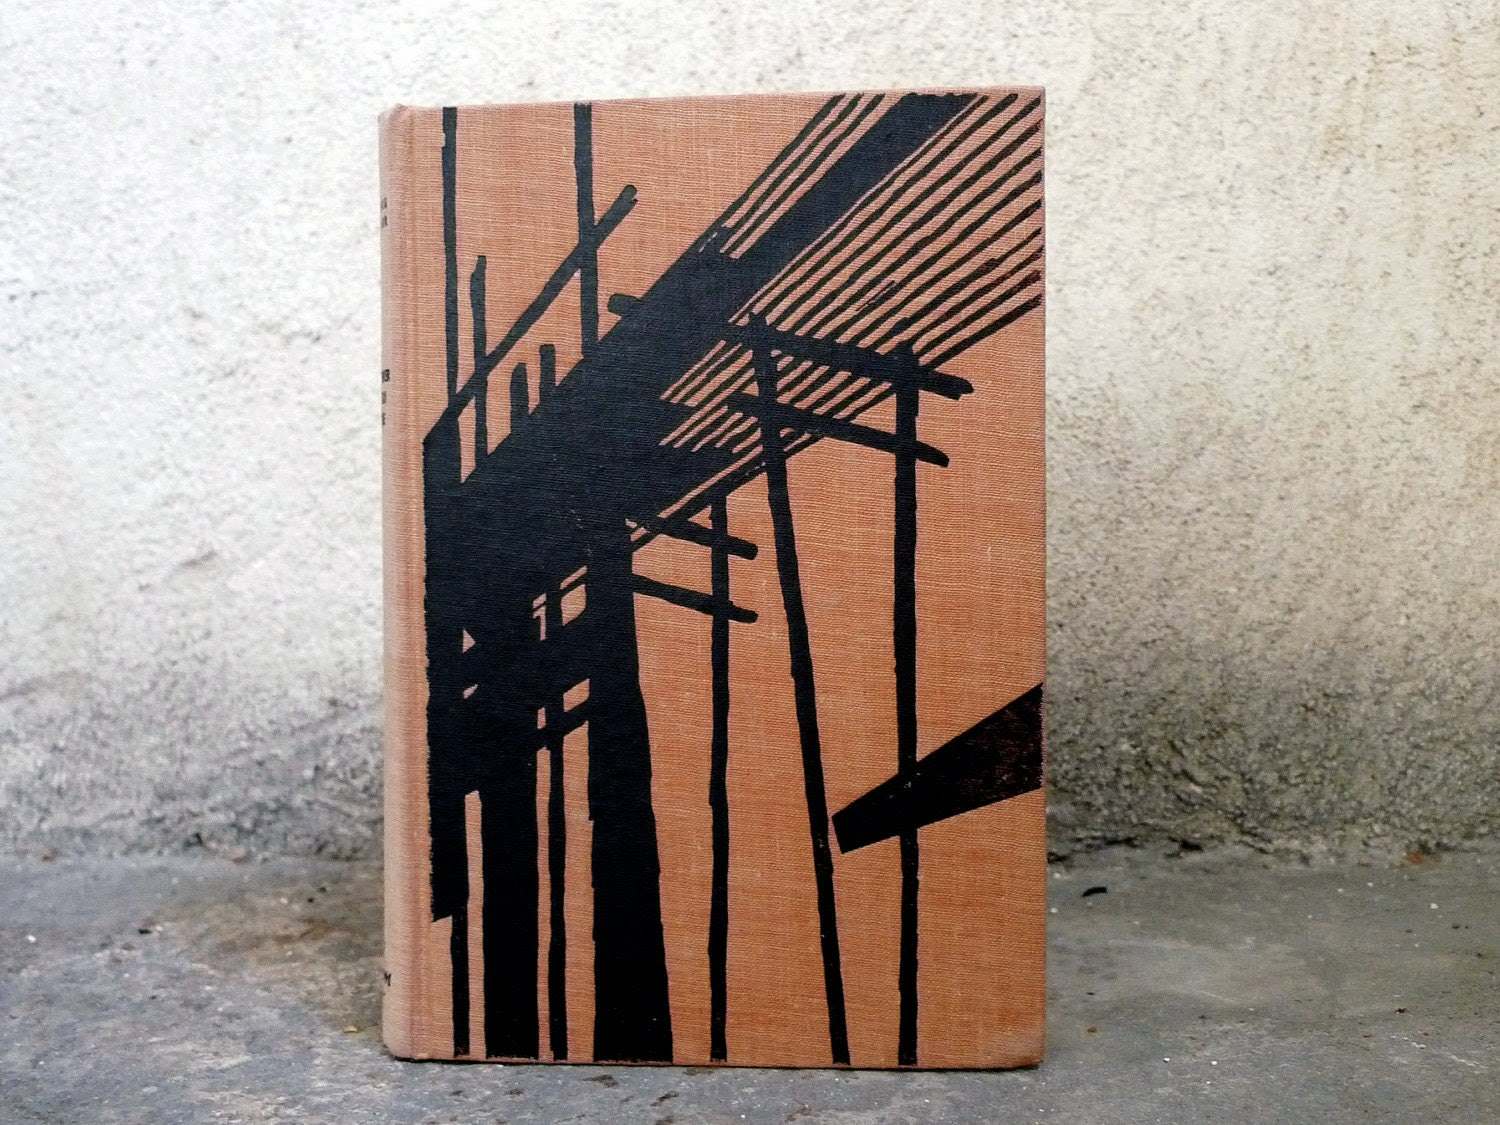 Rebound Retro Journal Upcycled French Vintage Book in Orange and Black - Spellbinderie